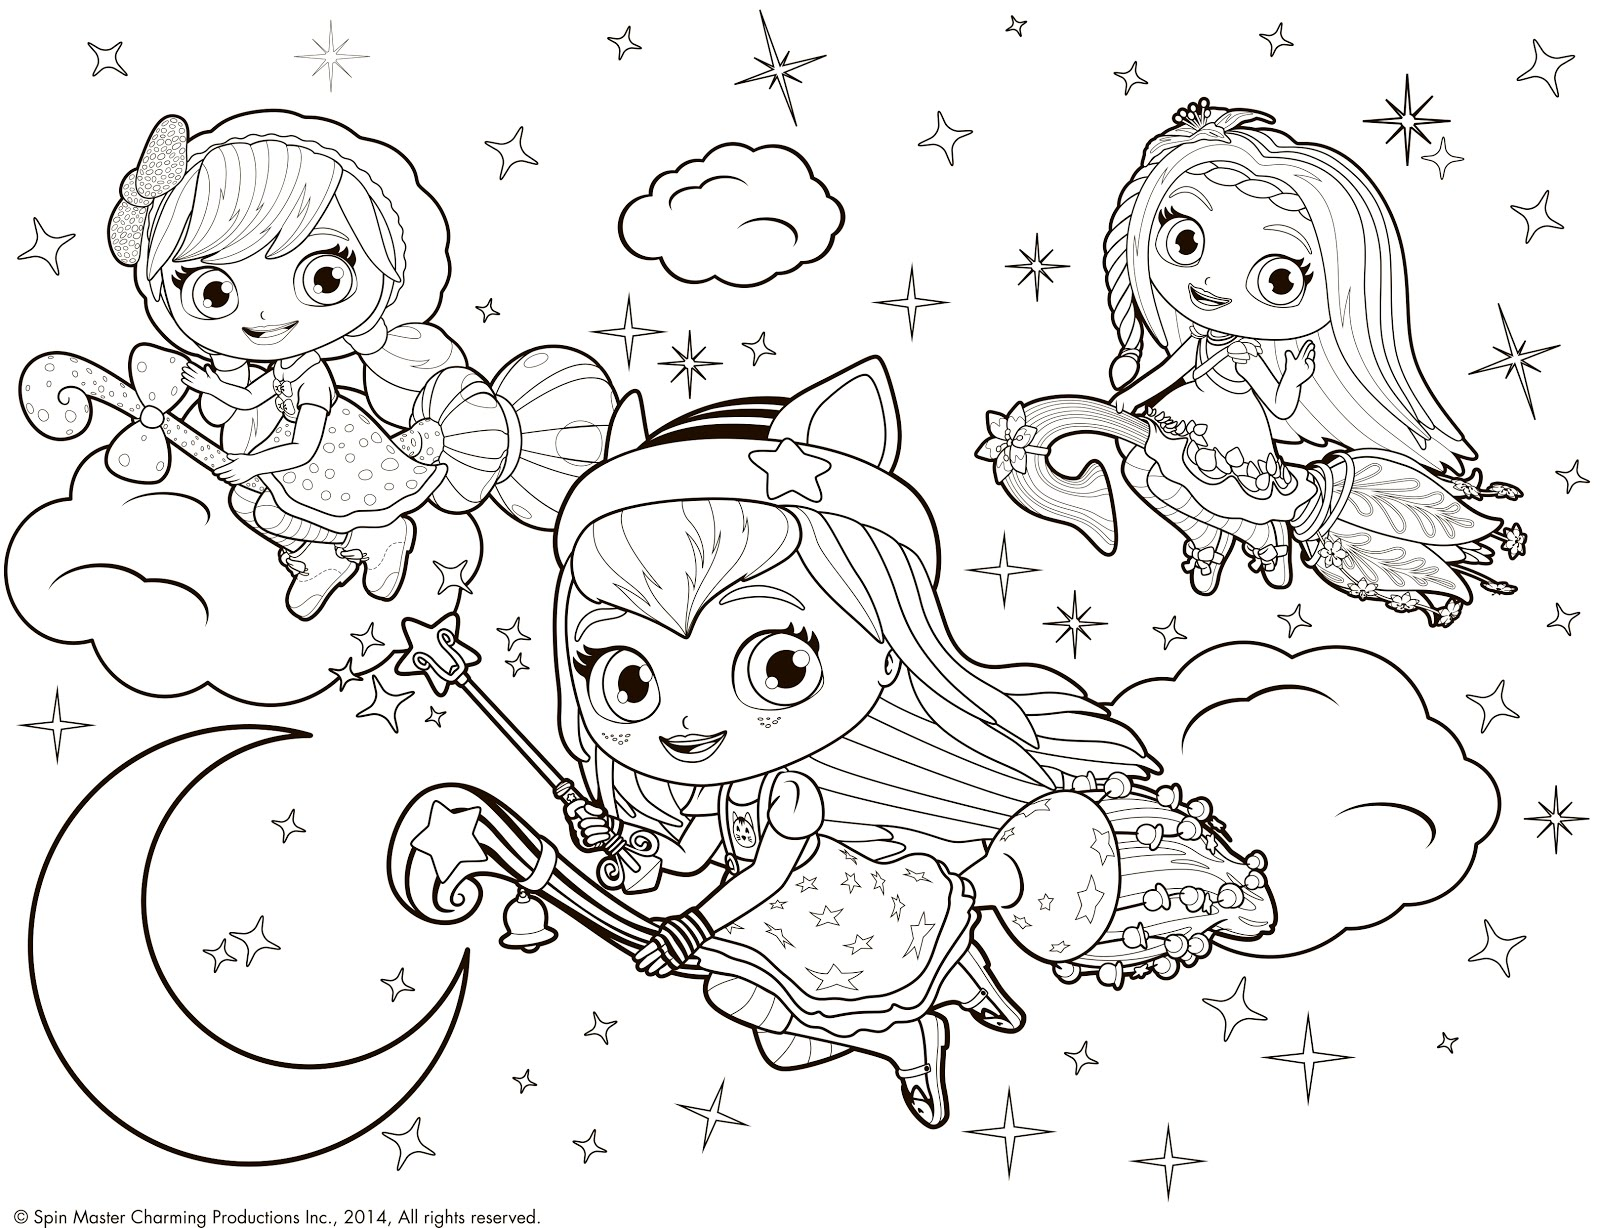 little charmers coloring pages printable - photo#17